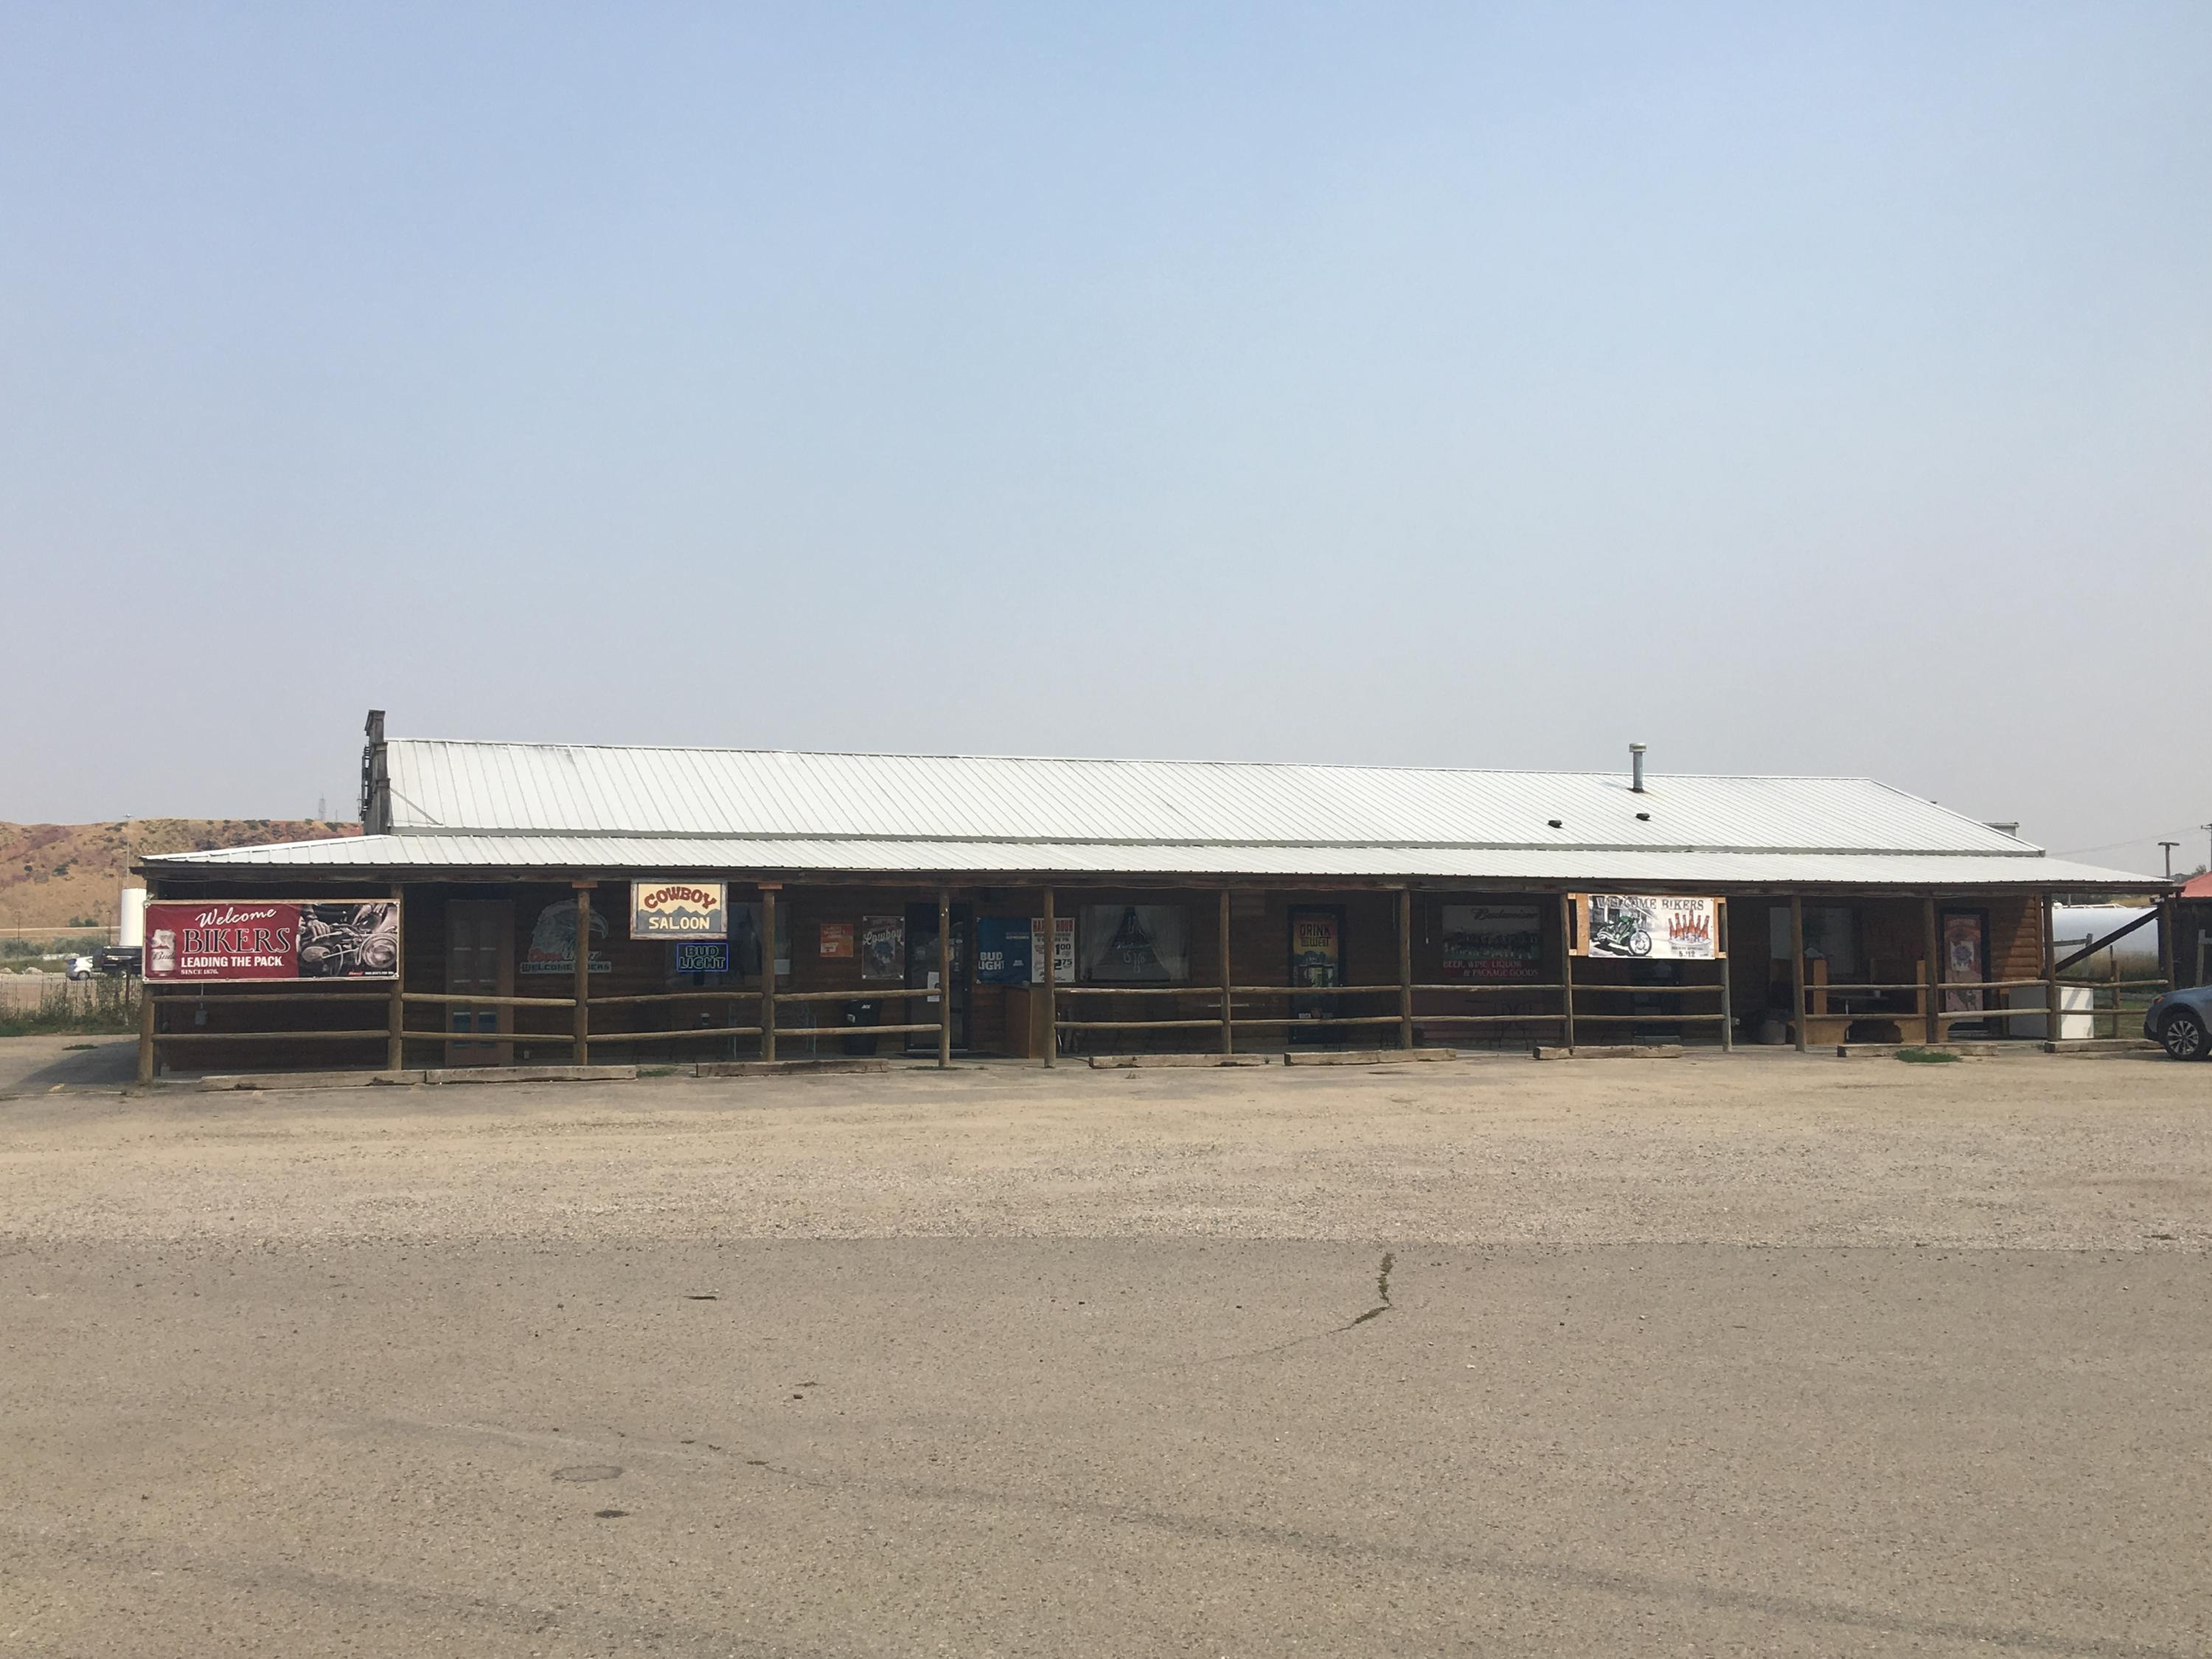 177 US HWY 16, Buffalo, Wyoming 82834, ,Commercial,For Sale,US HWY 16,17-986